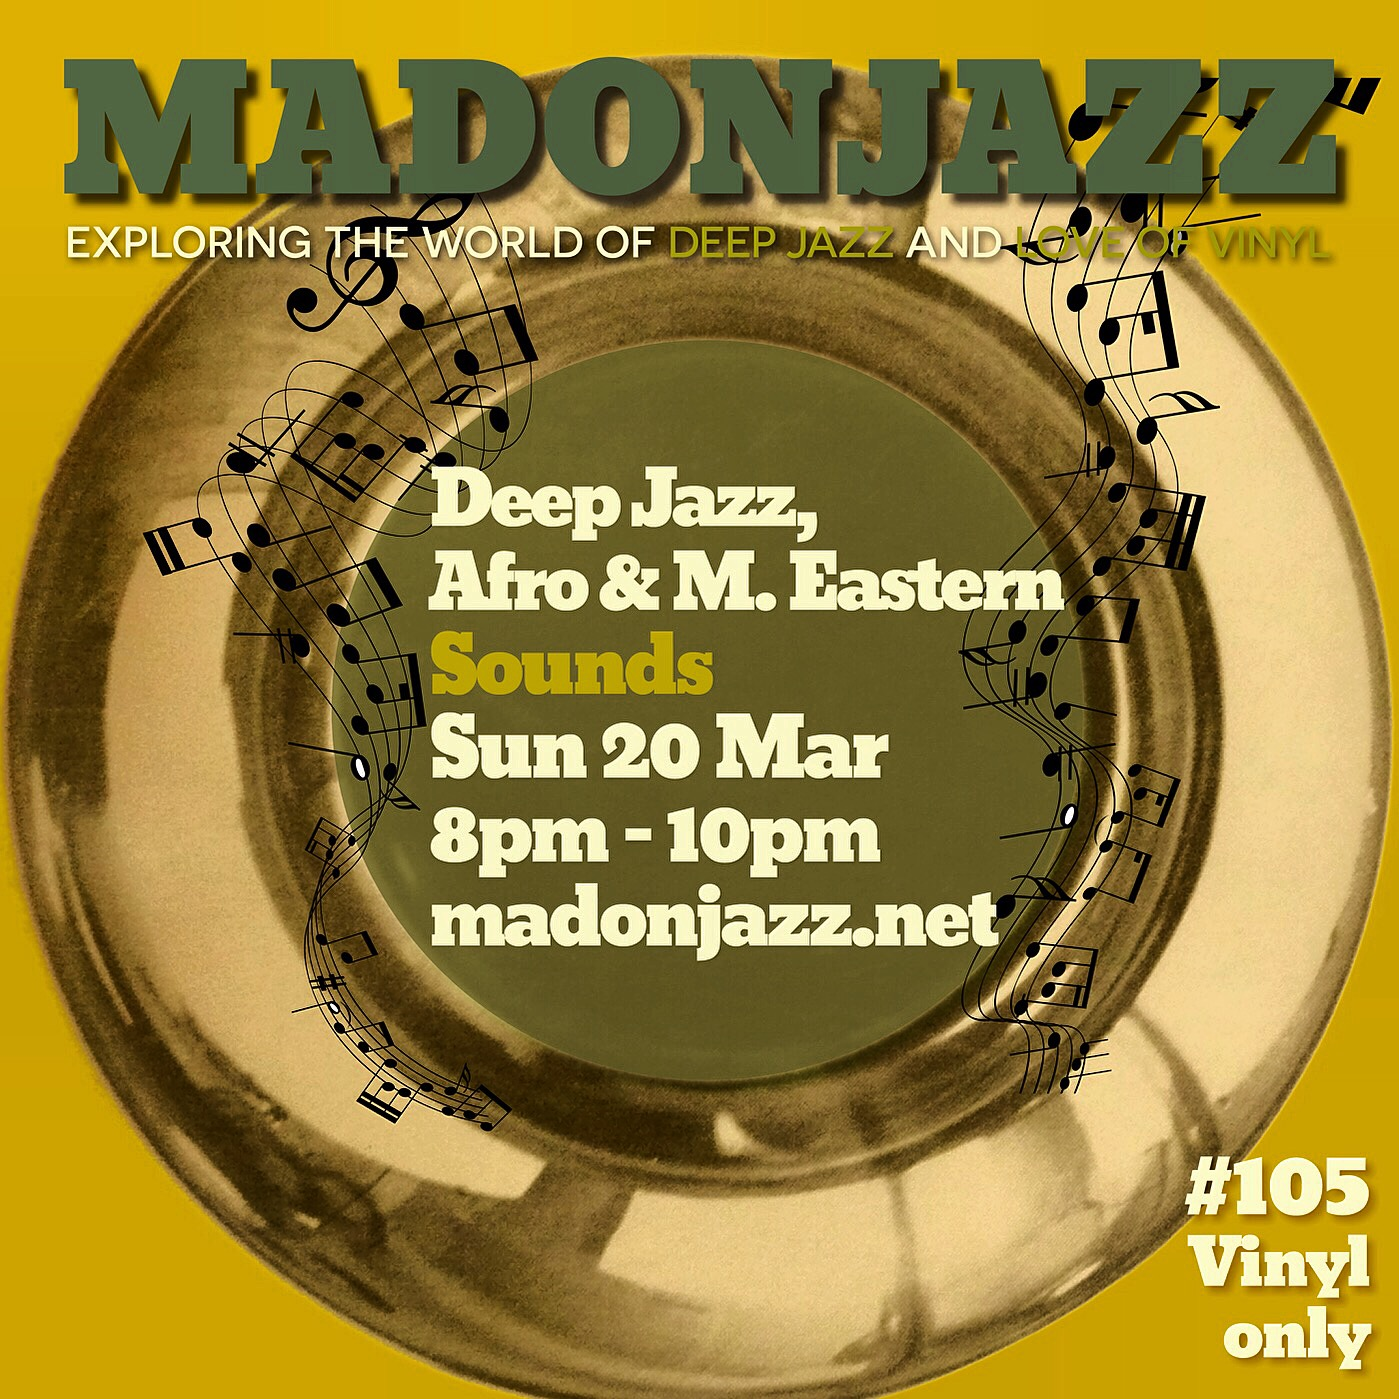 MADONJAZZ #105: Deep Jazz , Afro & M. Eastern Sounds